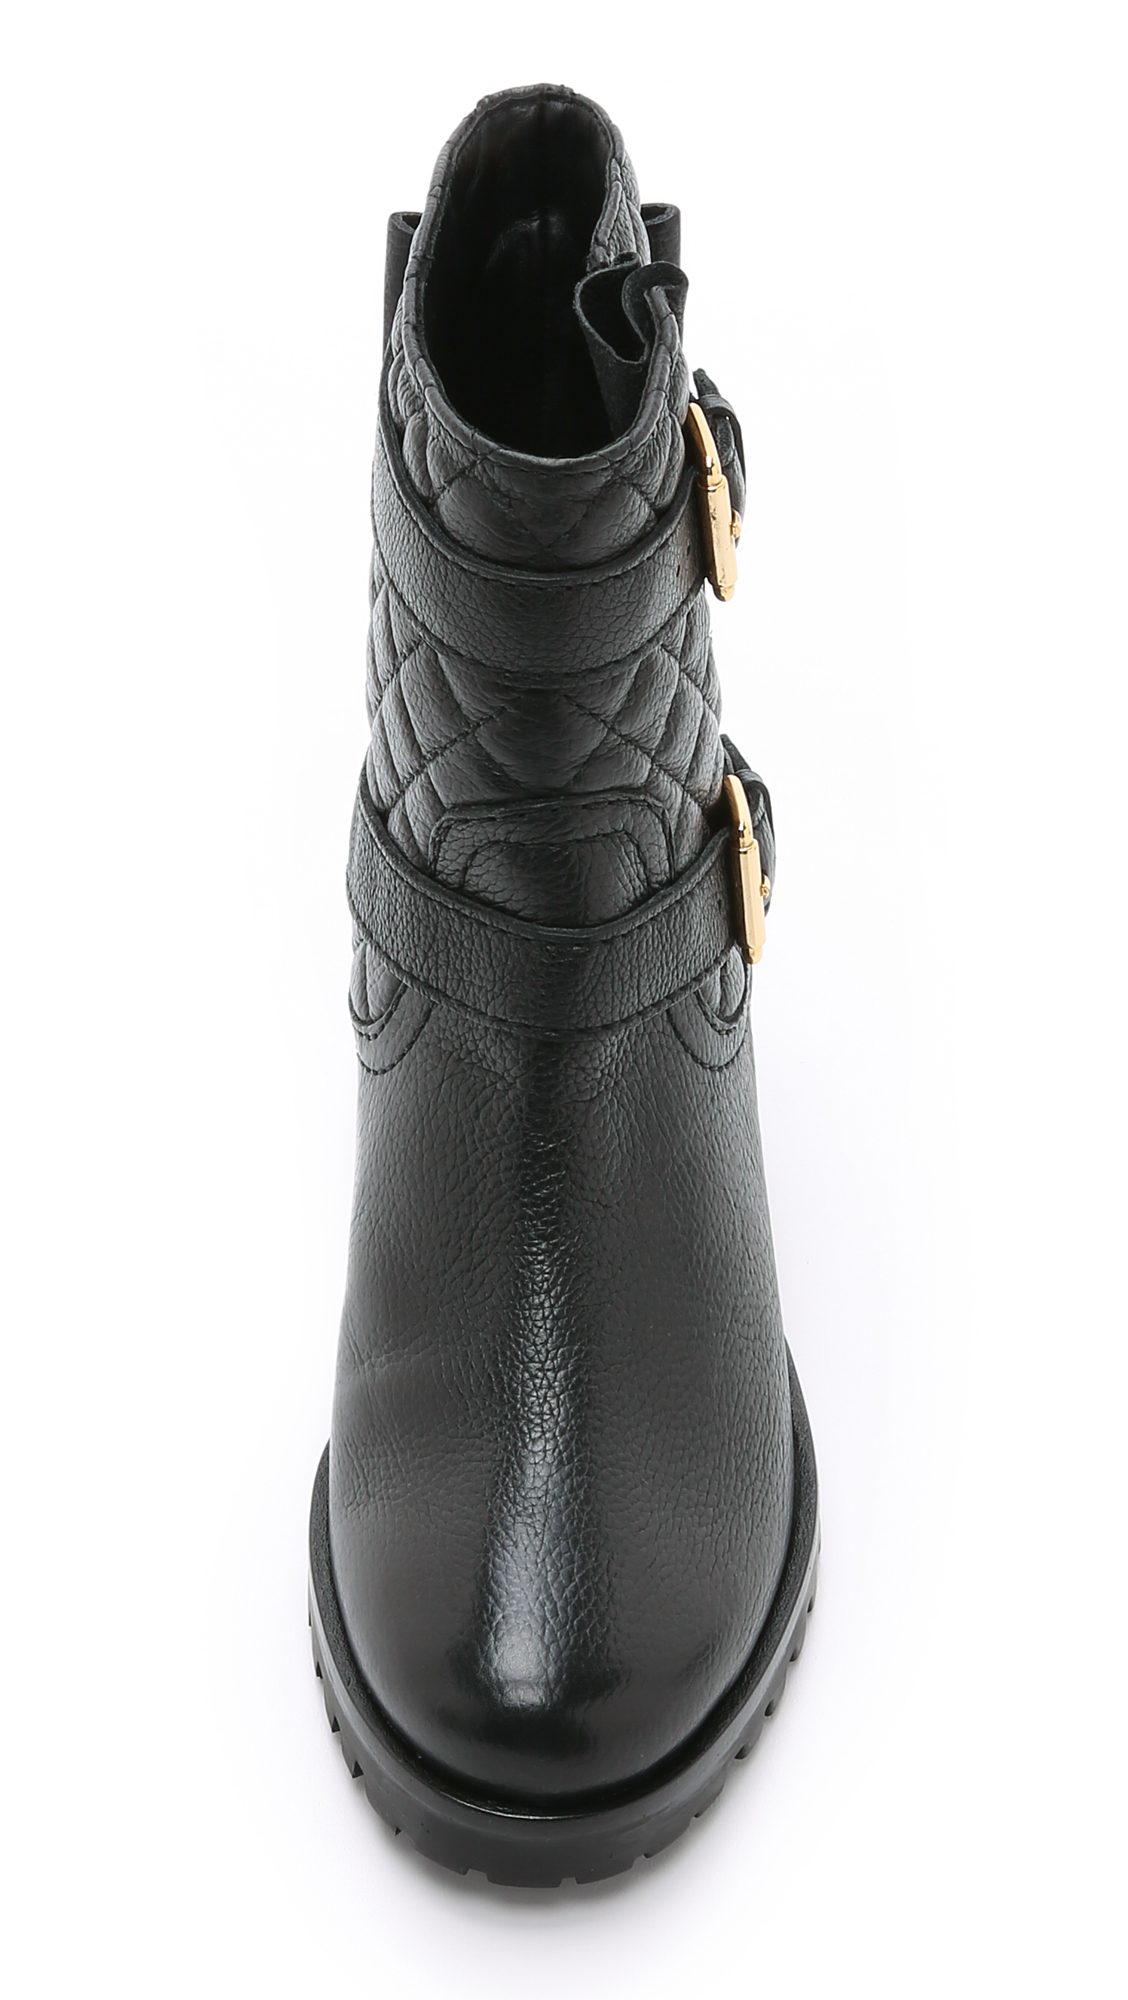 Kate Spade Leather Samara Quilted Moto Boots in Black/Black (Black)